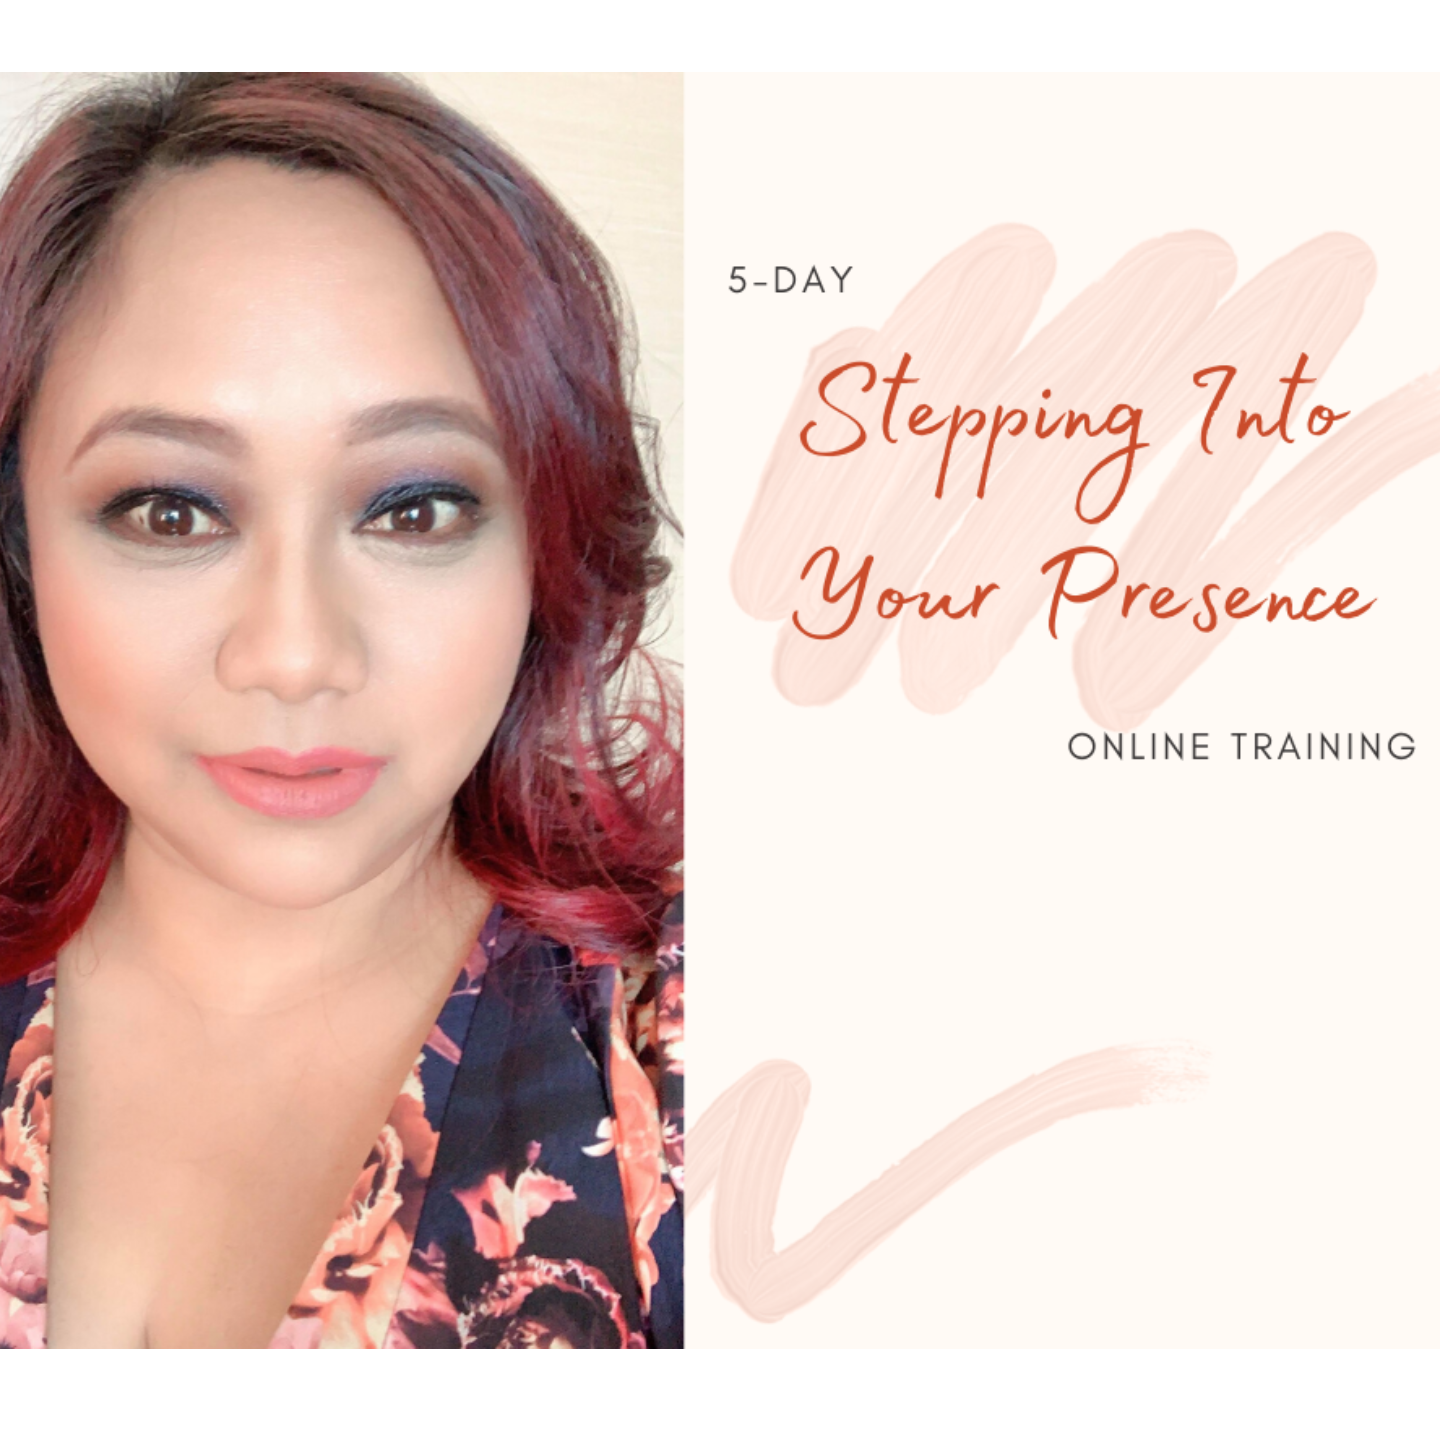 5-Day online training Stepping Into Your Presence